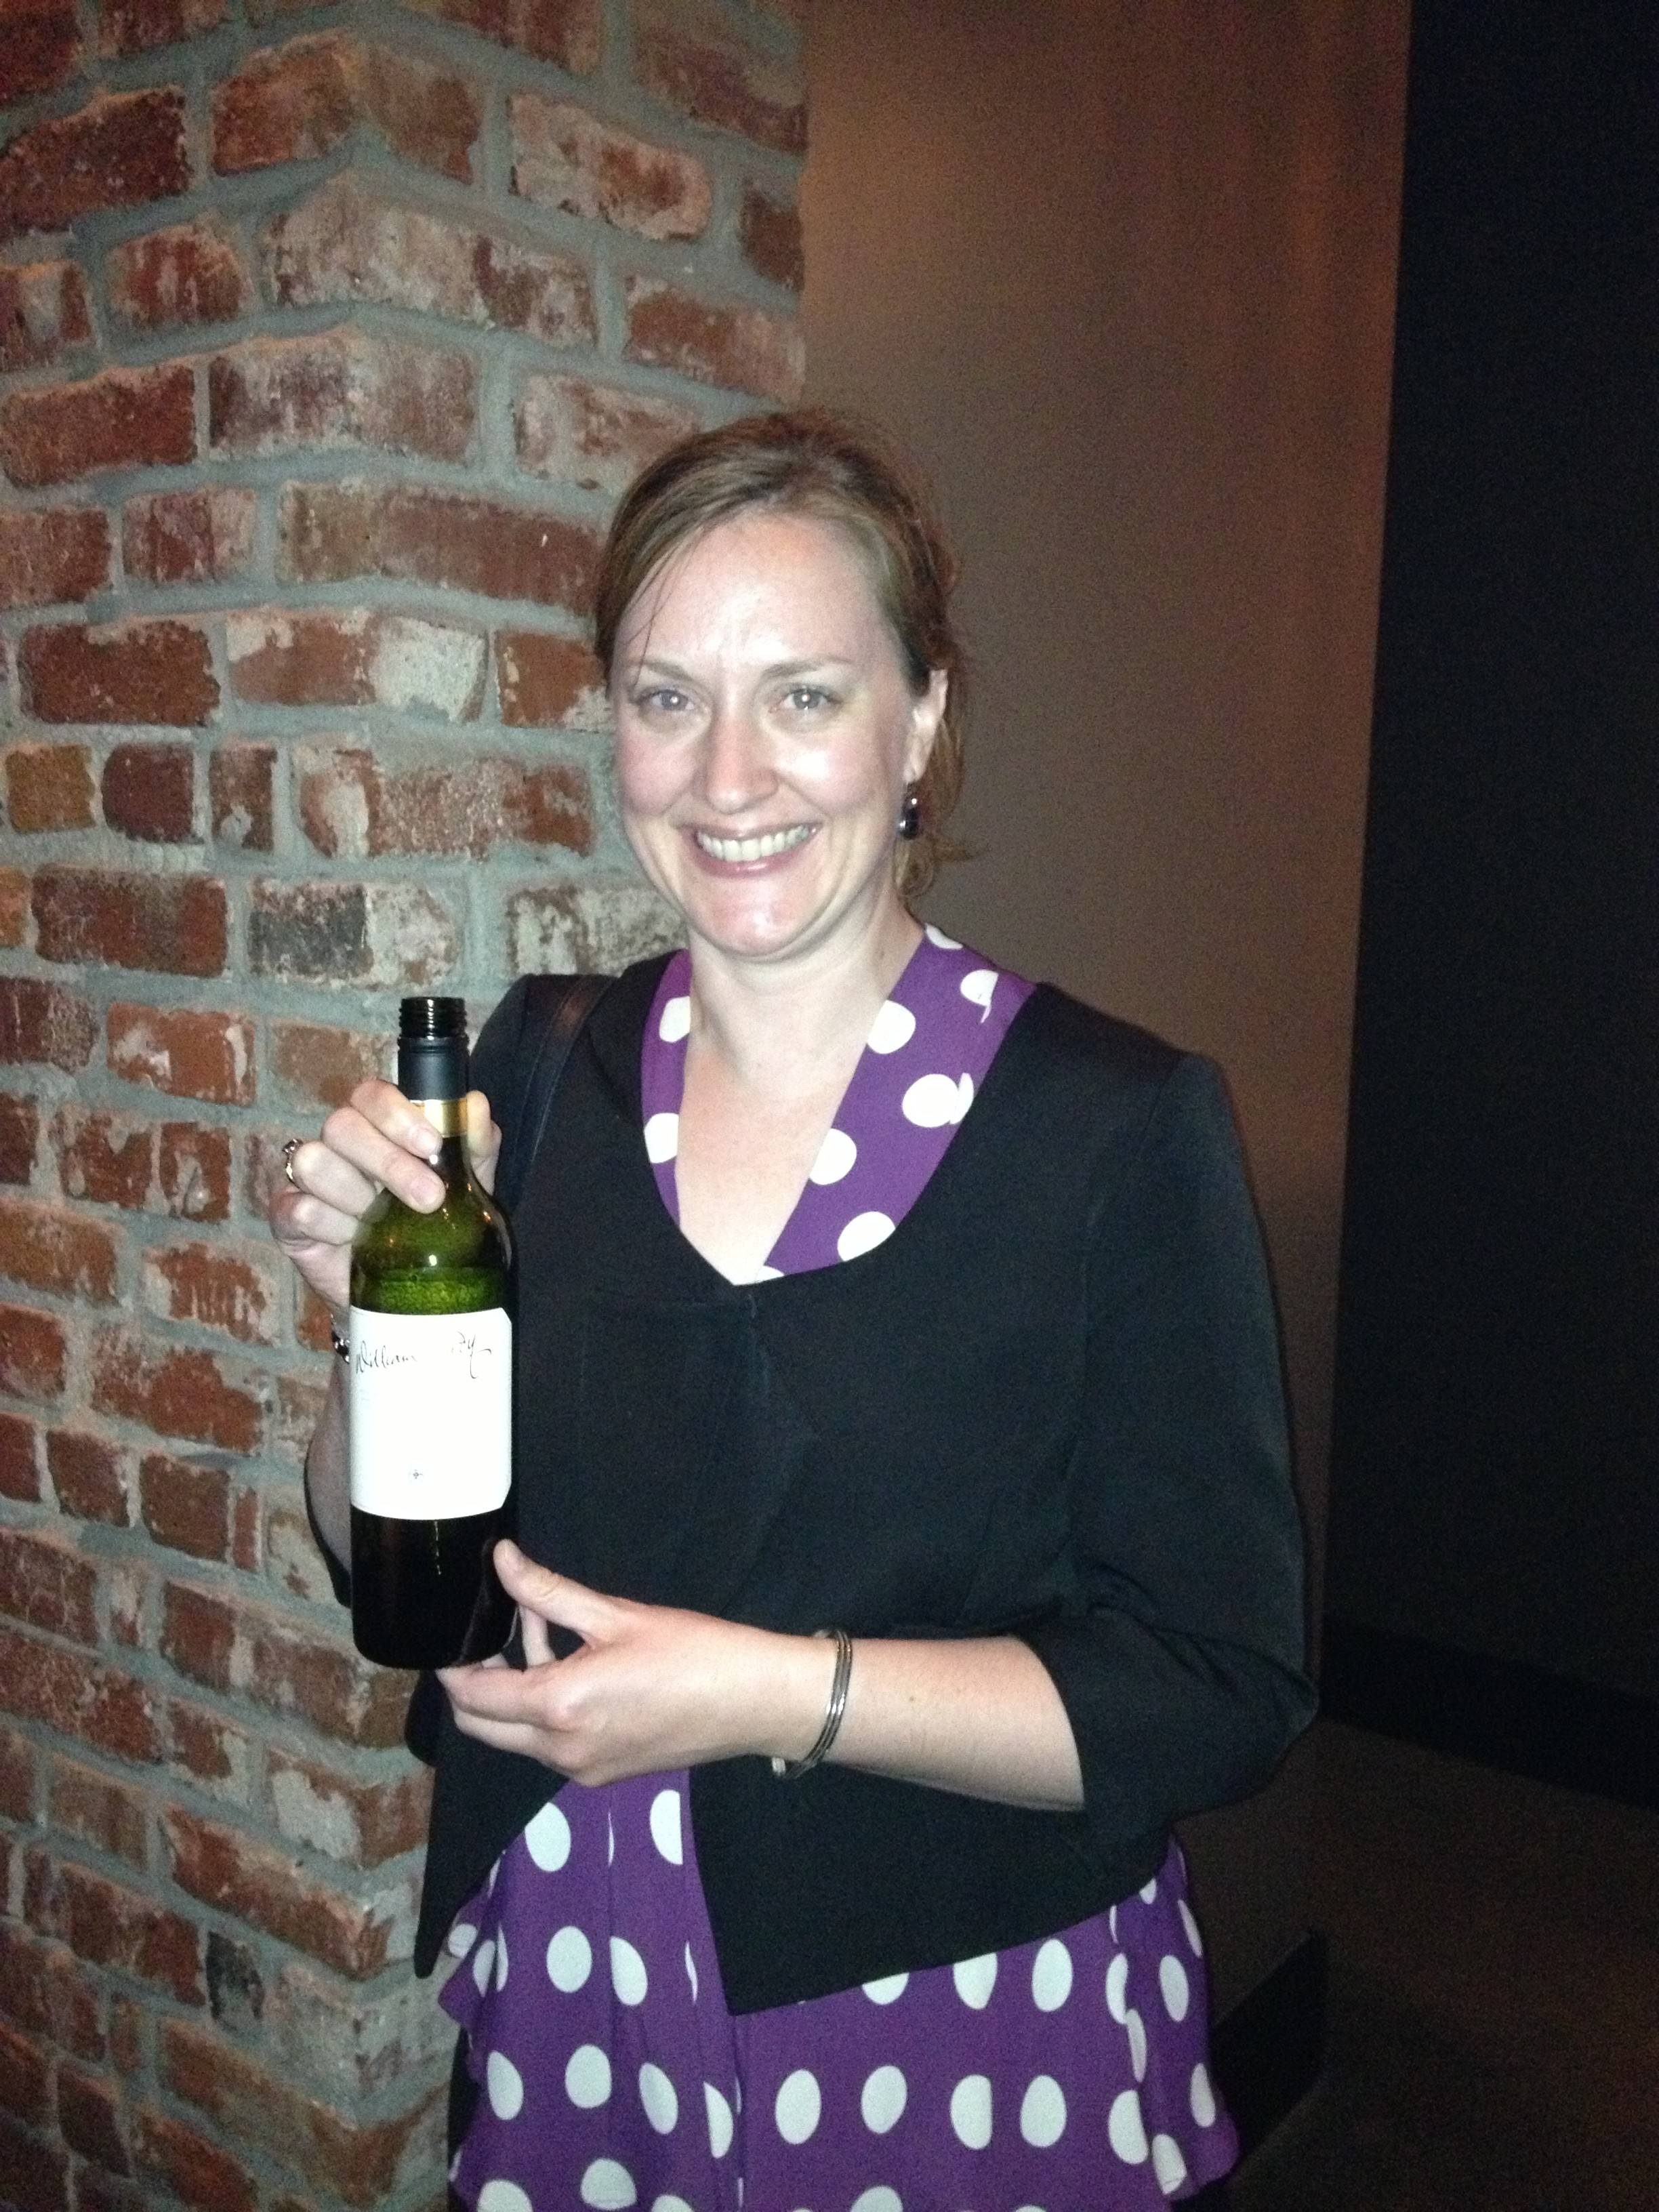 Kate Hardy with her father's namesake William Hardy Wine